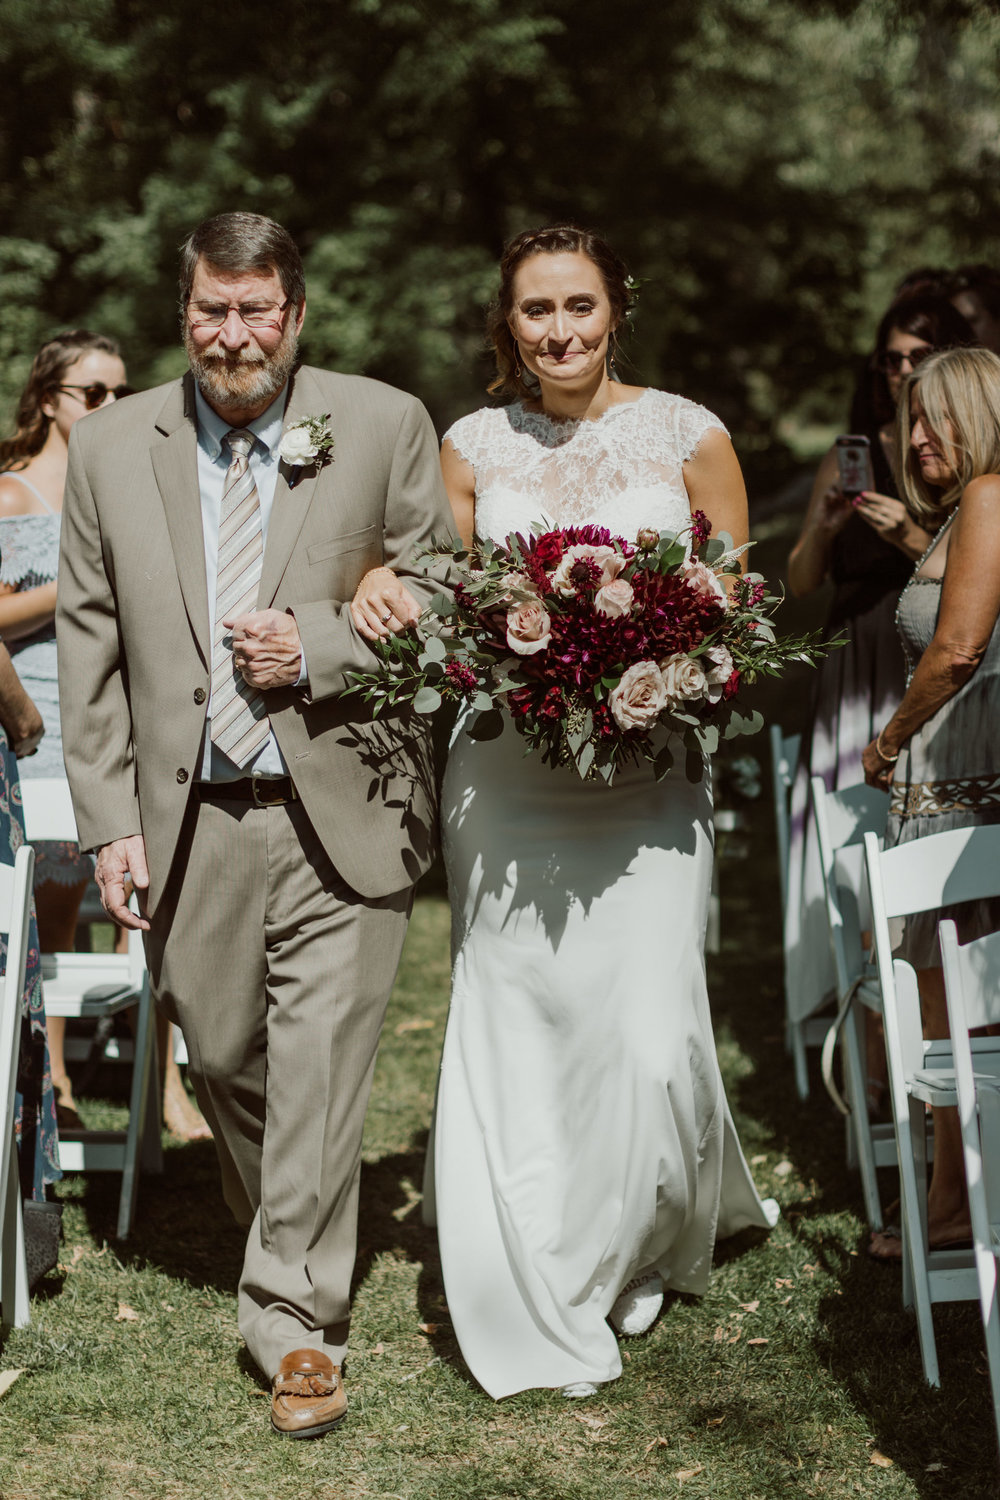 cedarandpines-wedgewood-boulder-creek-wedding-15.jpg